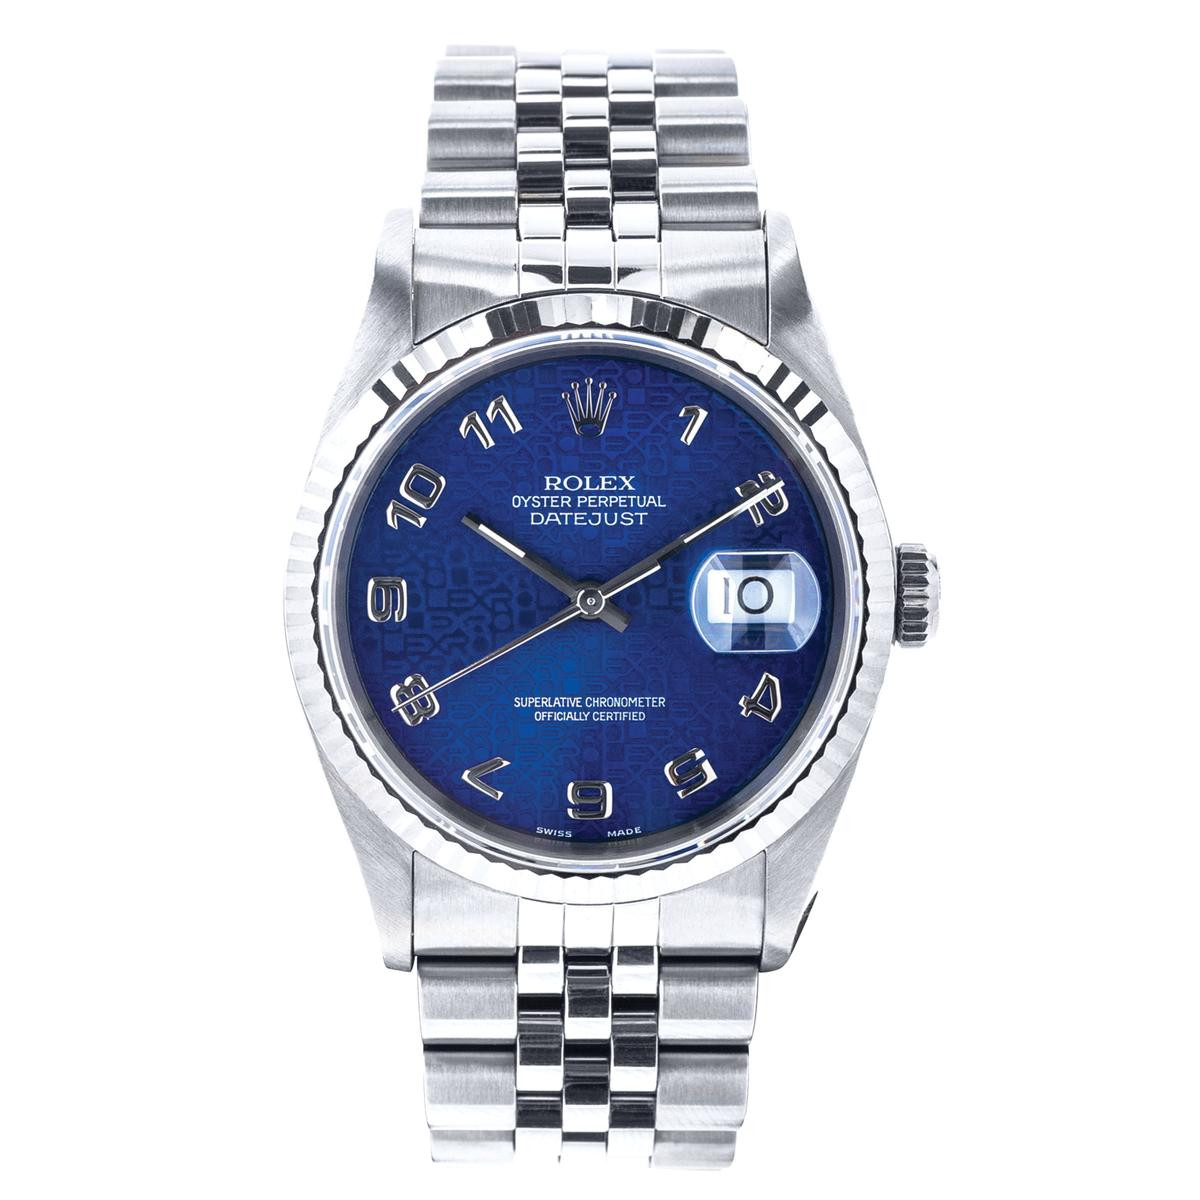 Preowned Rolex Datejust with Hologram Jubilee Dial